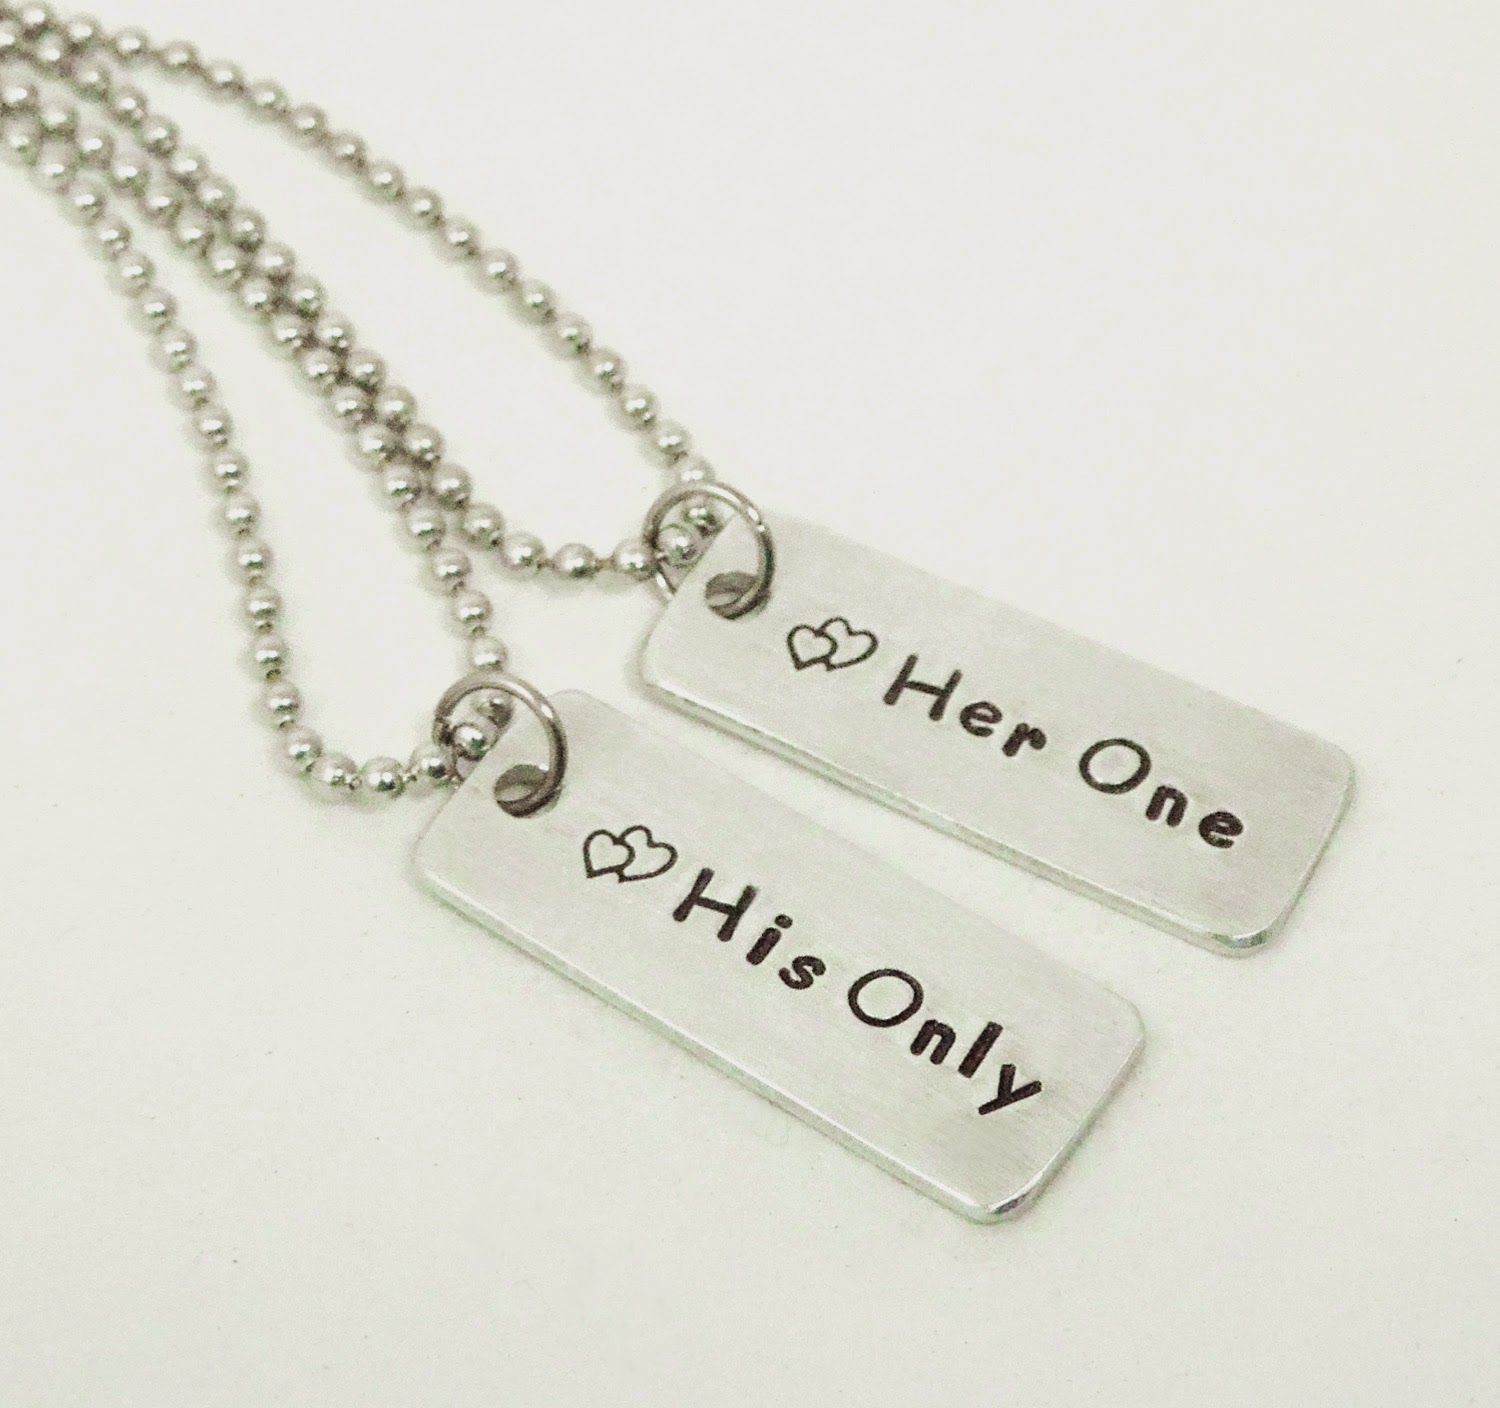 Stamped personalized wedding gifts, jewelry, key chains ...